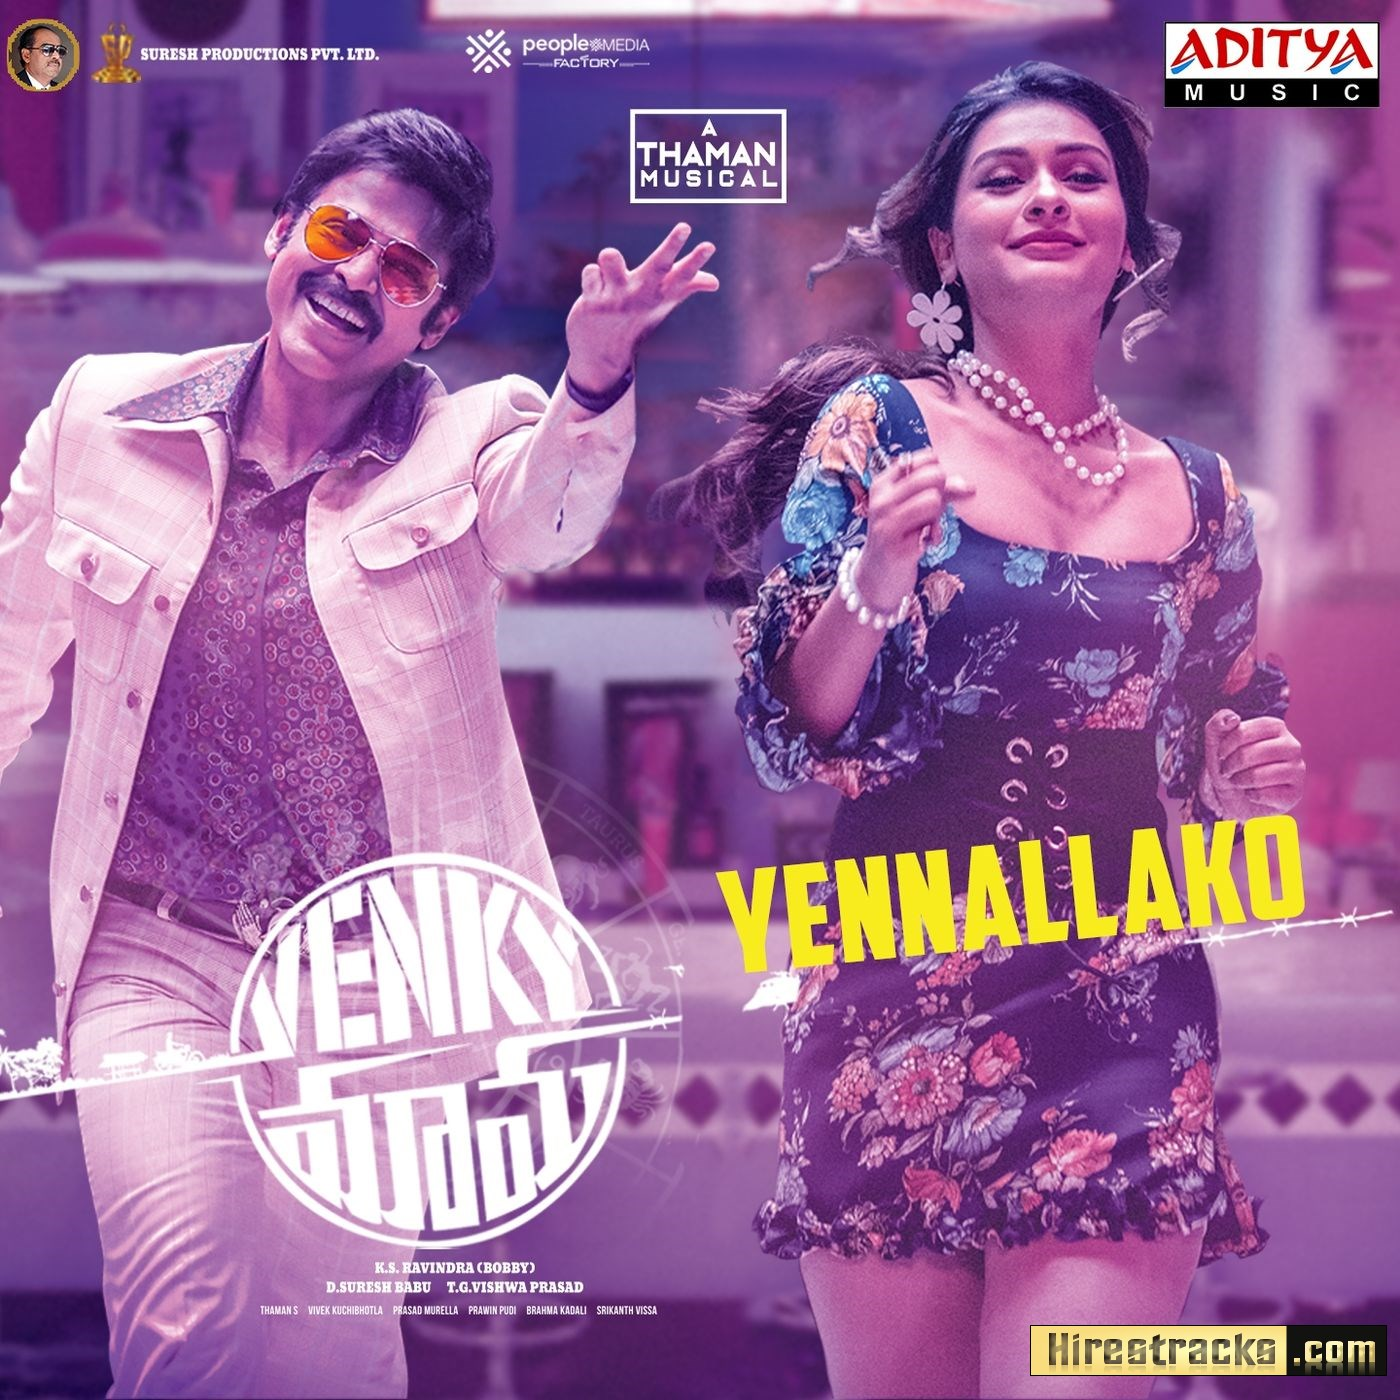 Yennallako (From Venky Mama) (2019) (Thaman S) (Aditya Music) [Digital-DL-FLAC]